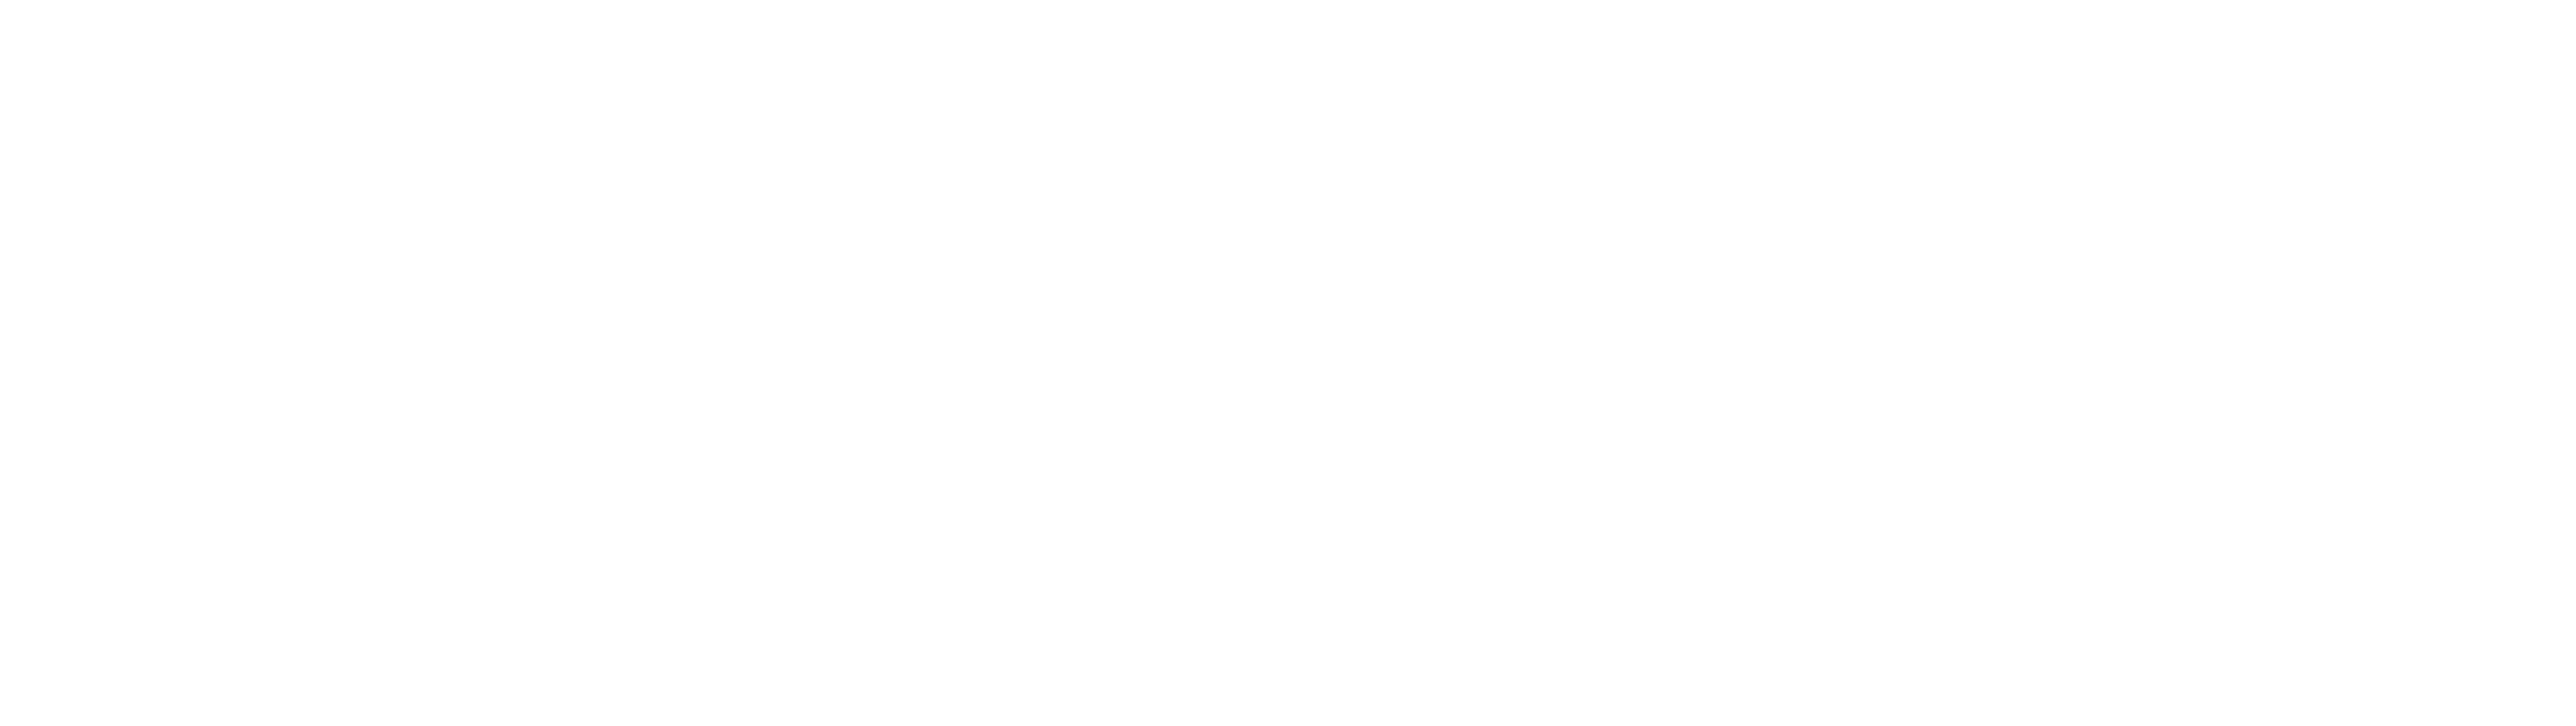 Artivist Entertainment